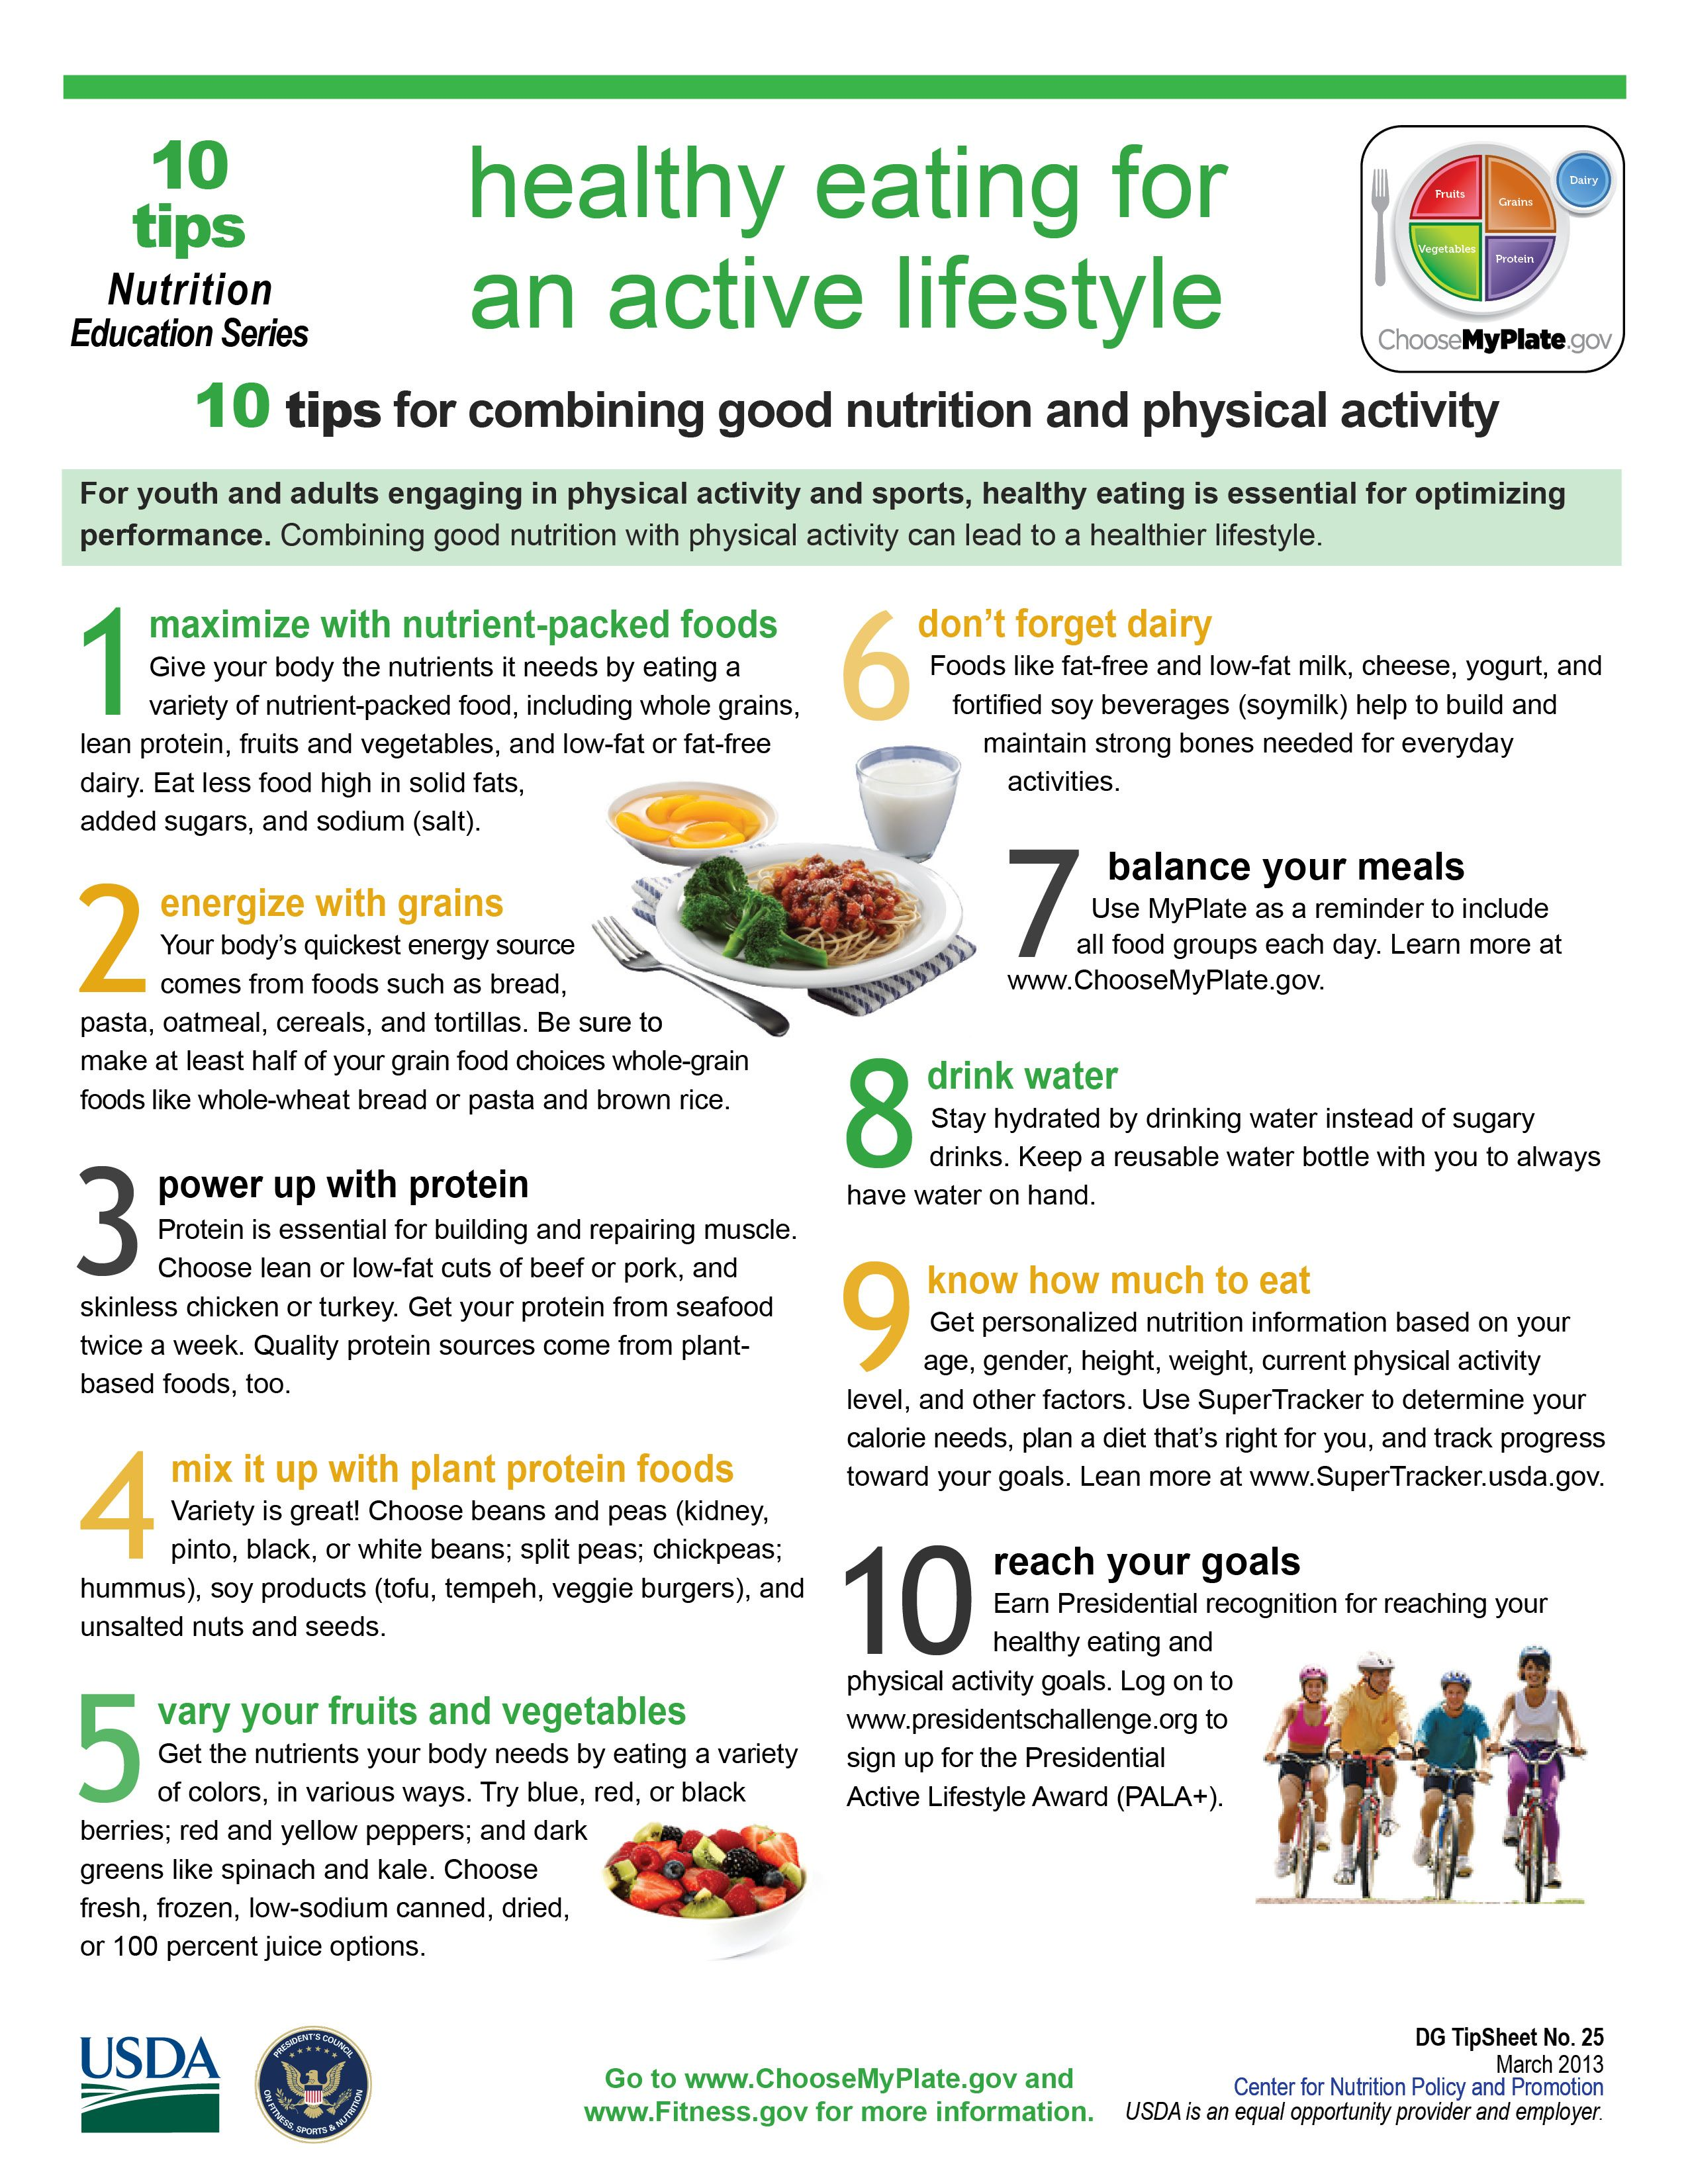 10 Tips Healthy Eating For An Active Lifestyle